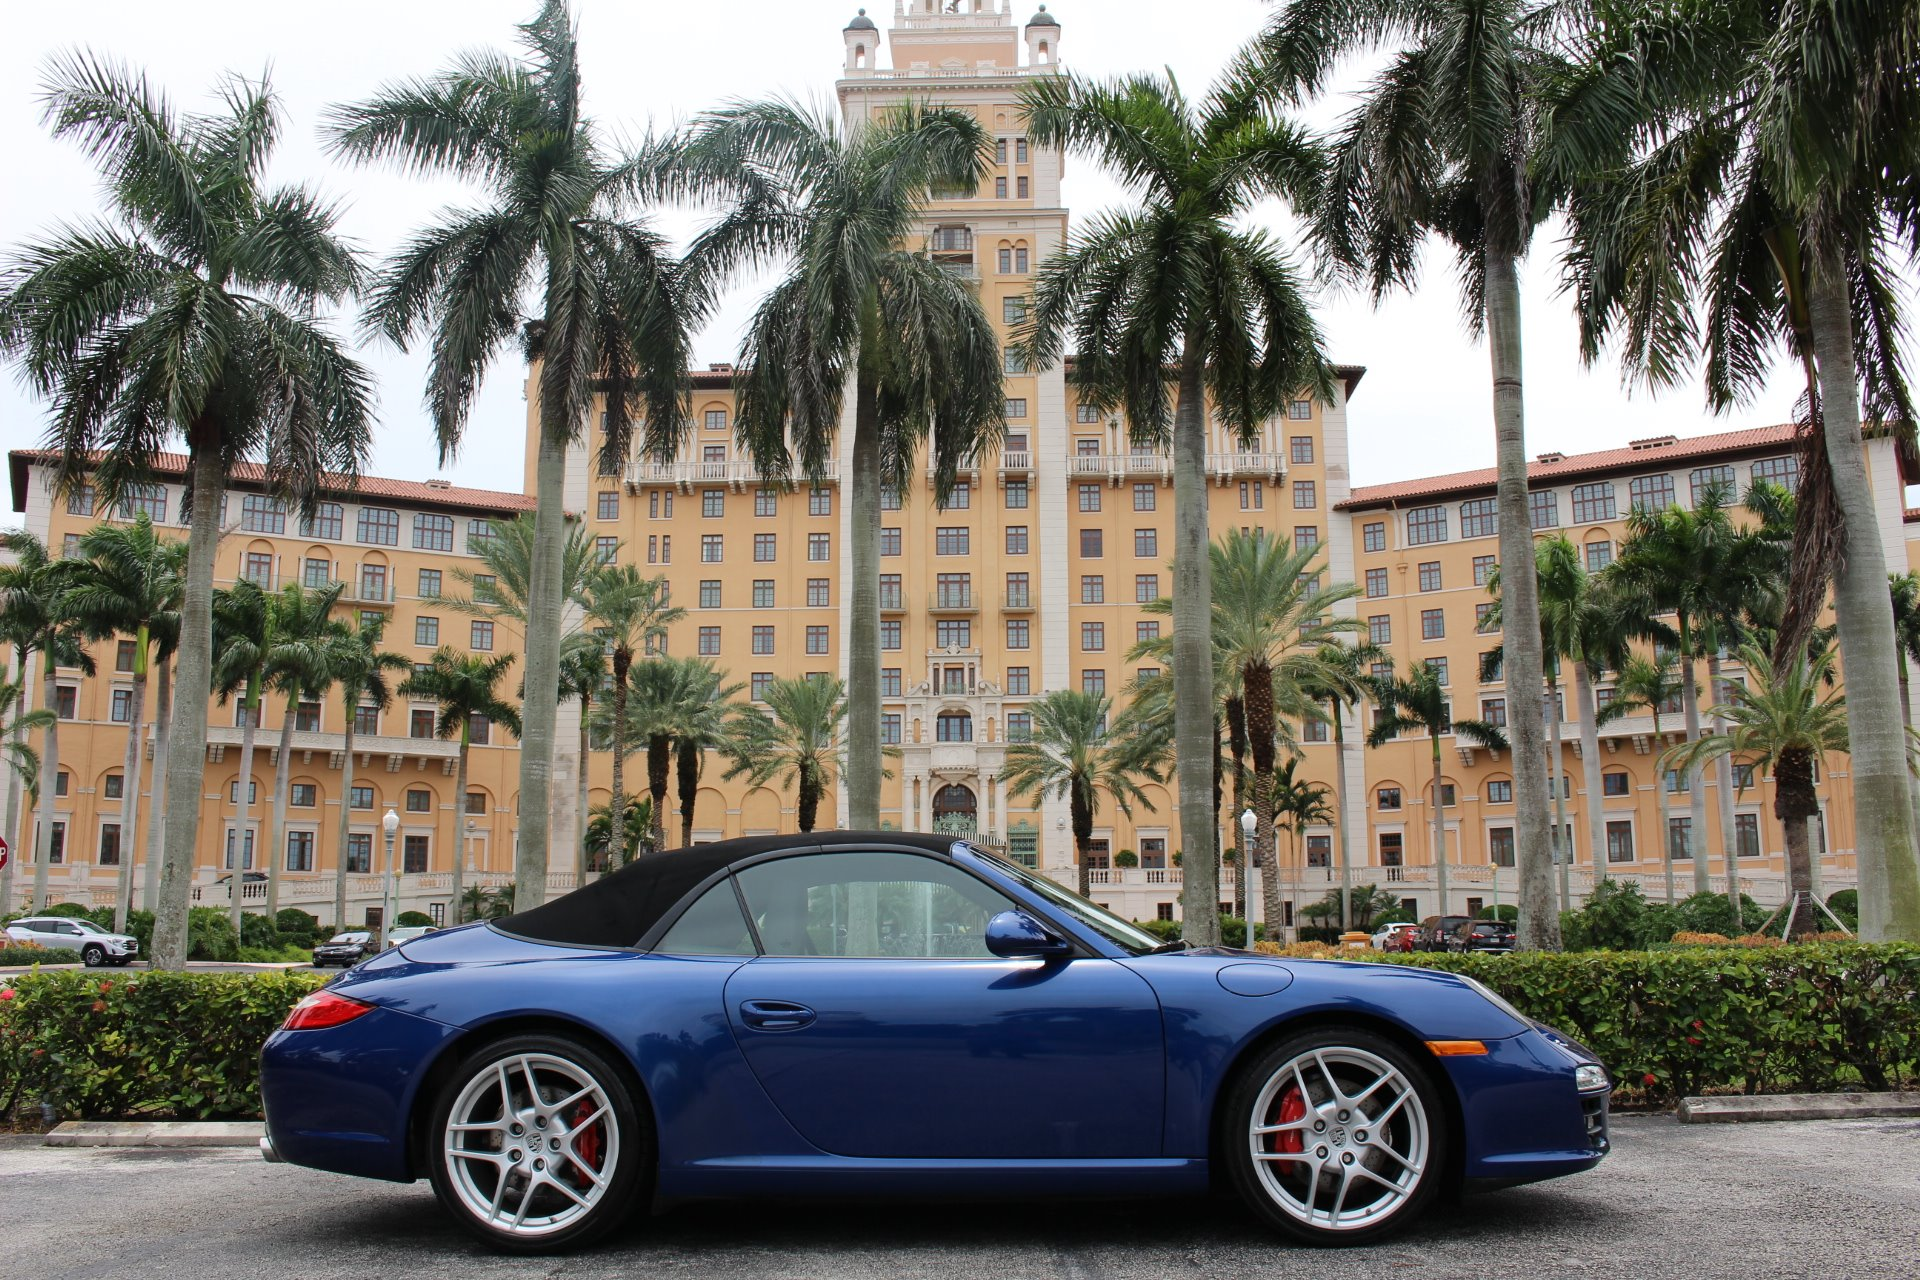 Used 2009 Porsche 911 Carrera S for sale $47,850 at The Gables Sports Cars in Miami FL 33146 2